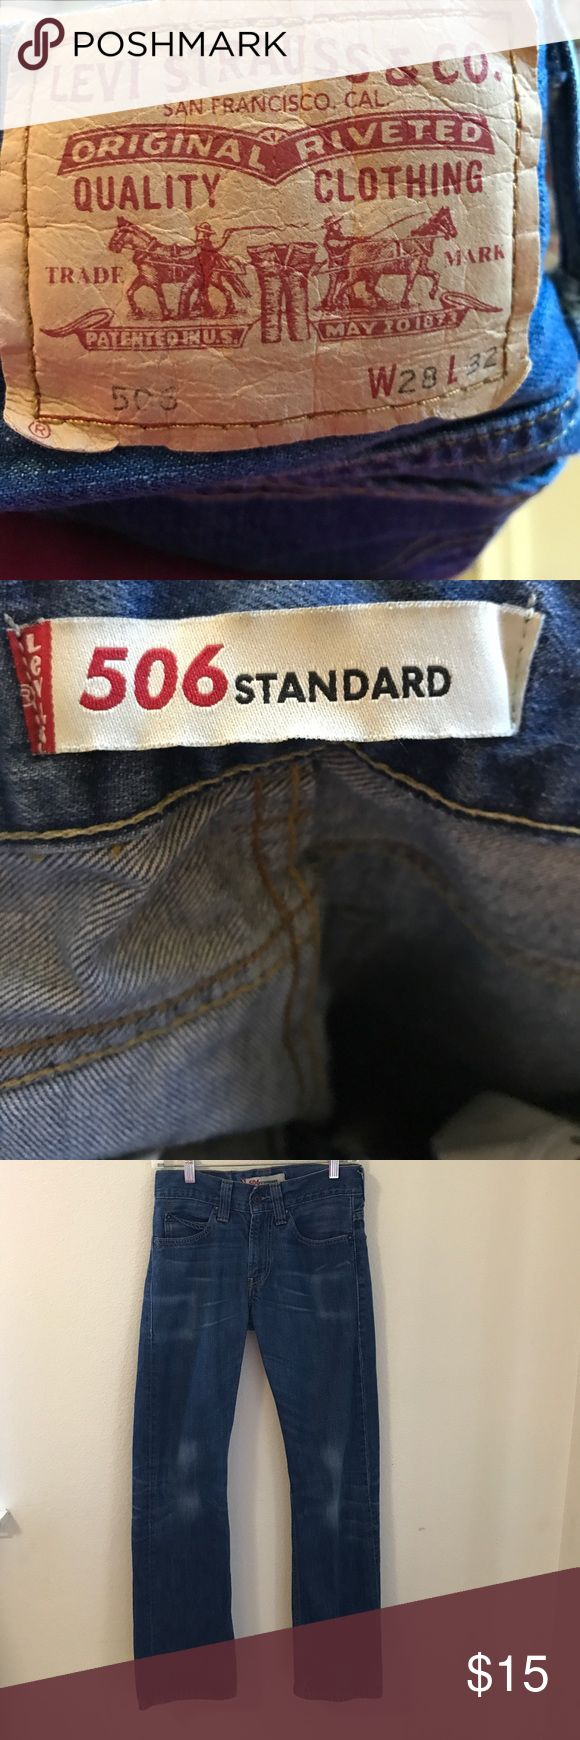 Levi's 506 size 28 Levi's 506 style blue jeans . Size 28 and length is 32 inches . Rise is approximately 8 1/2 inches. Regular fit . Levi's Jeans